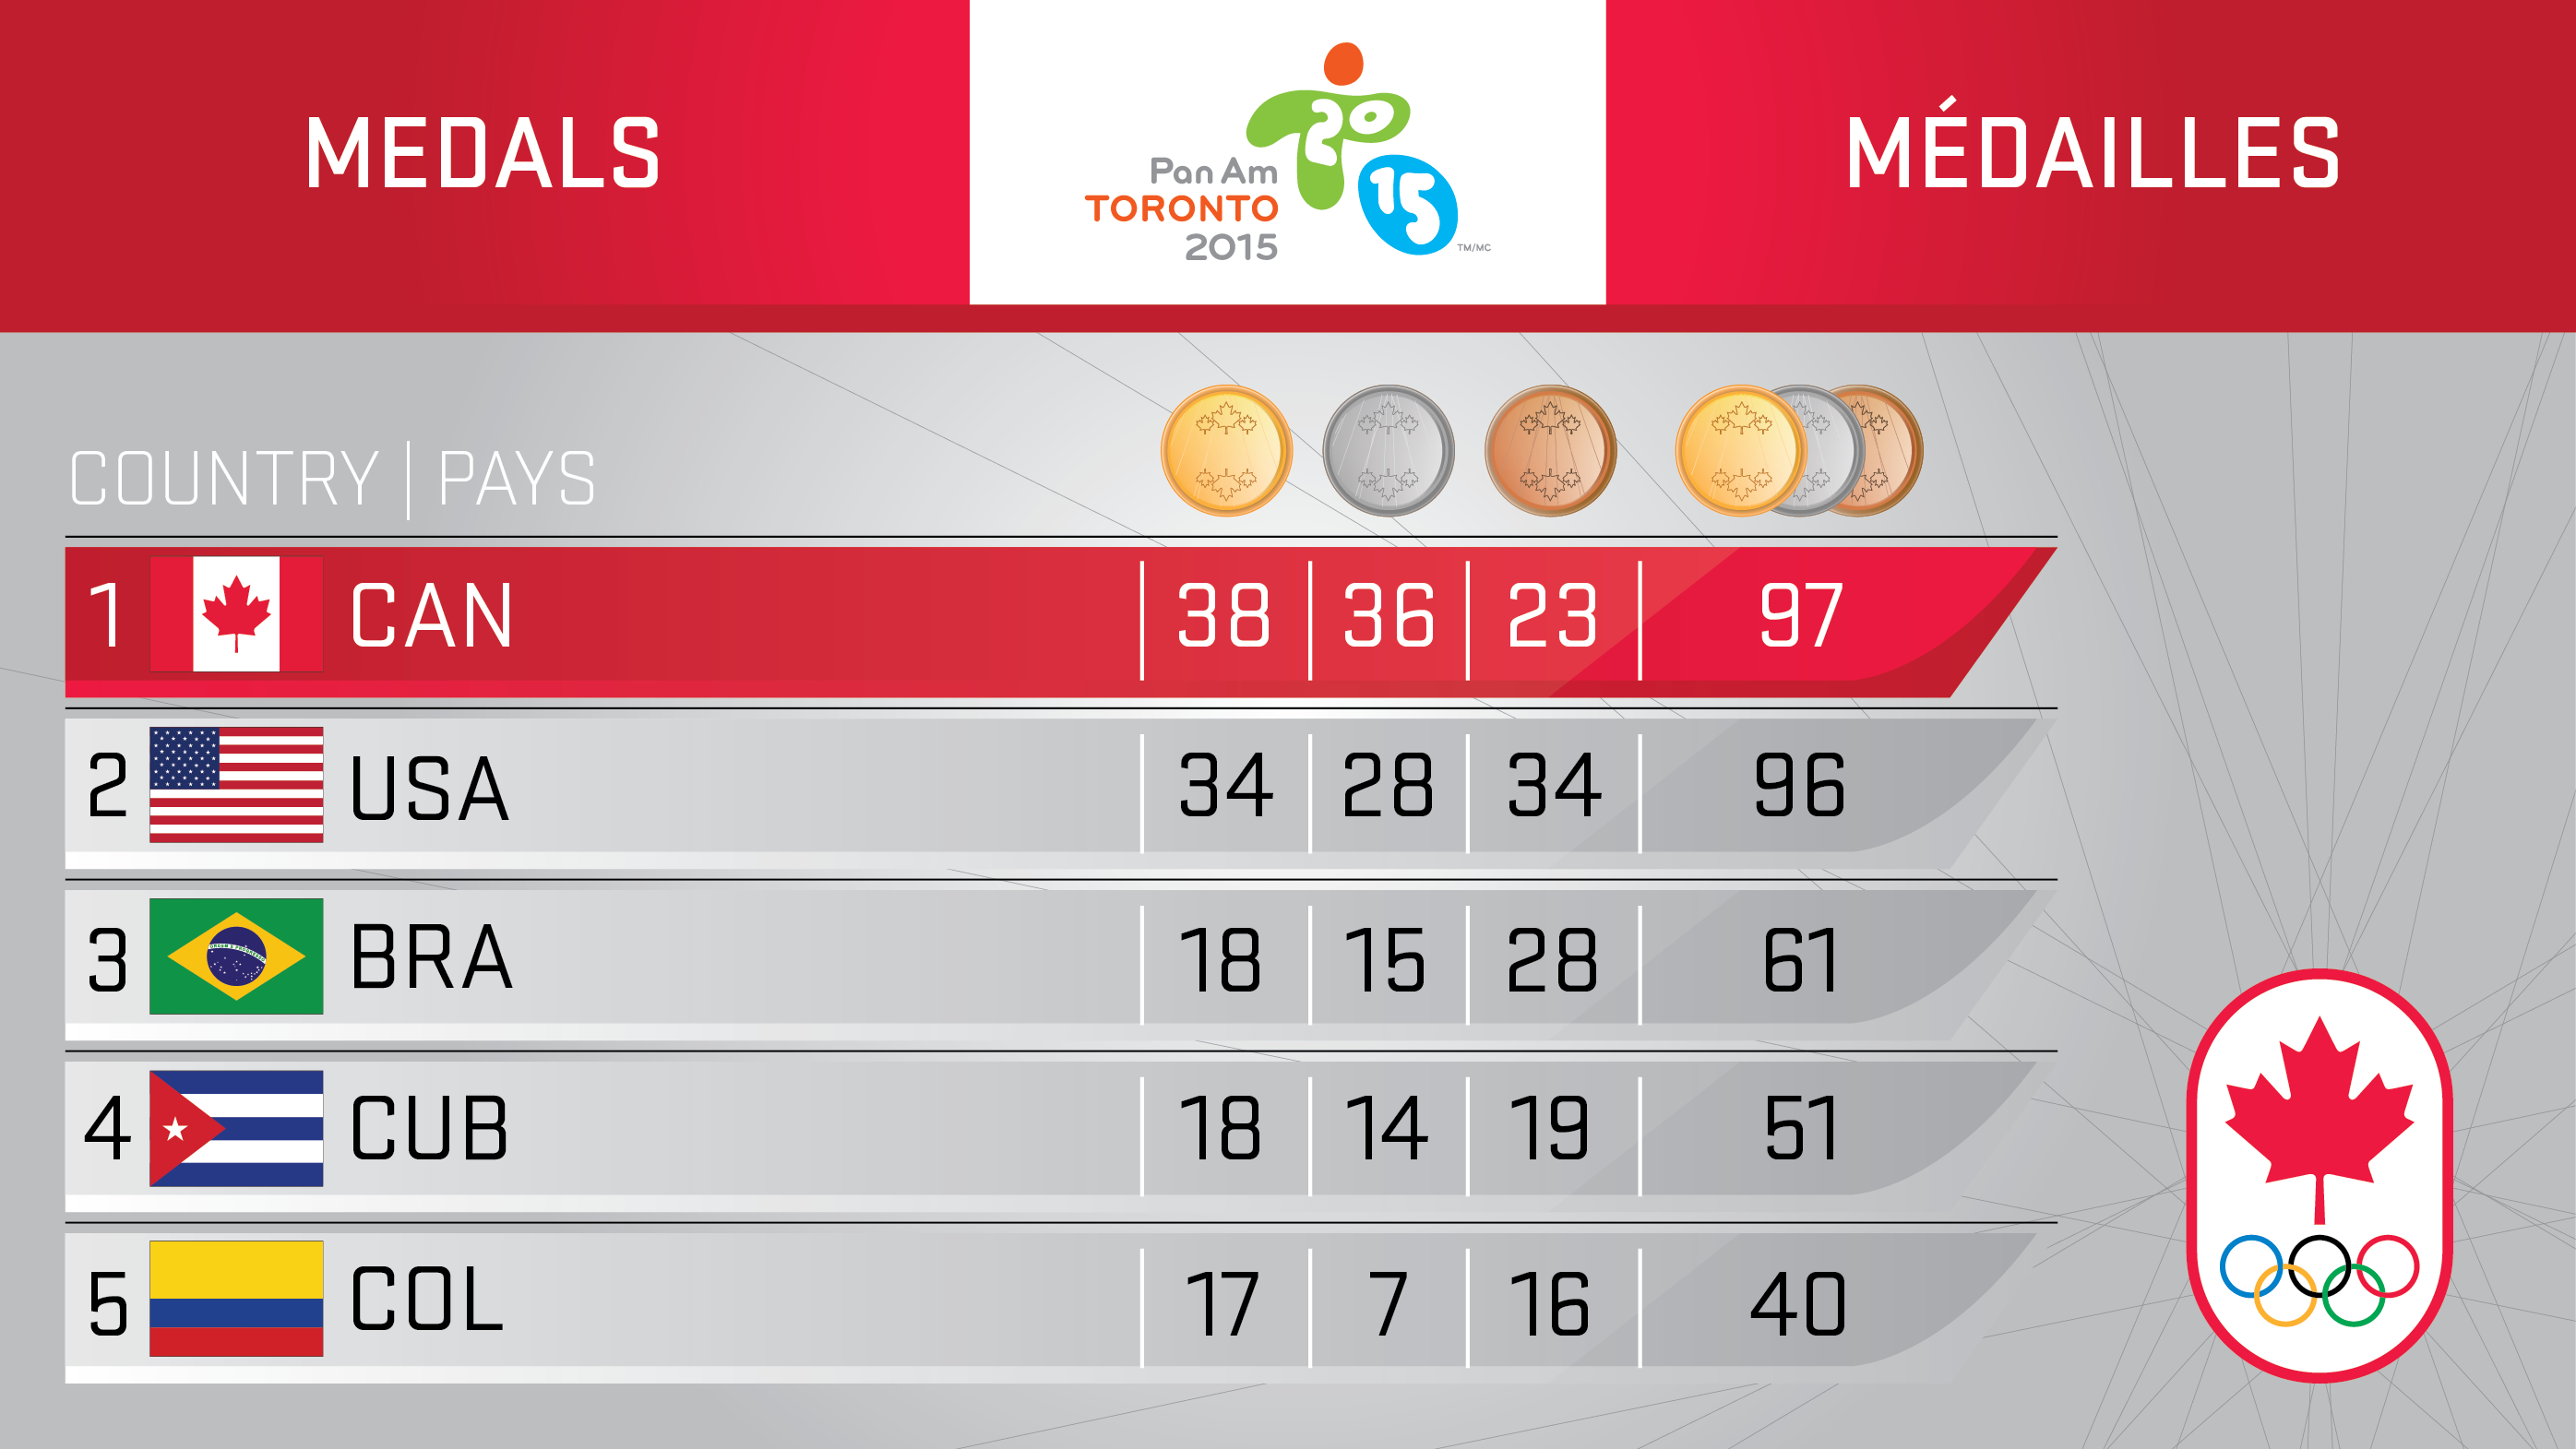 Day 6 - 2015 Pan Am Games Medal Table